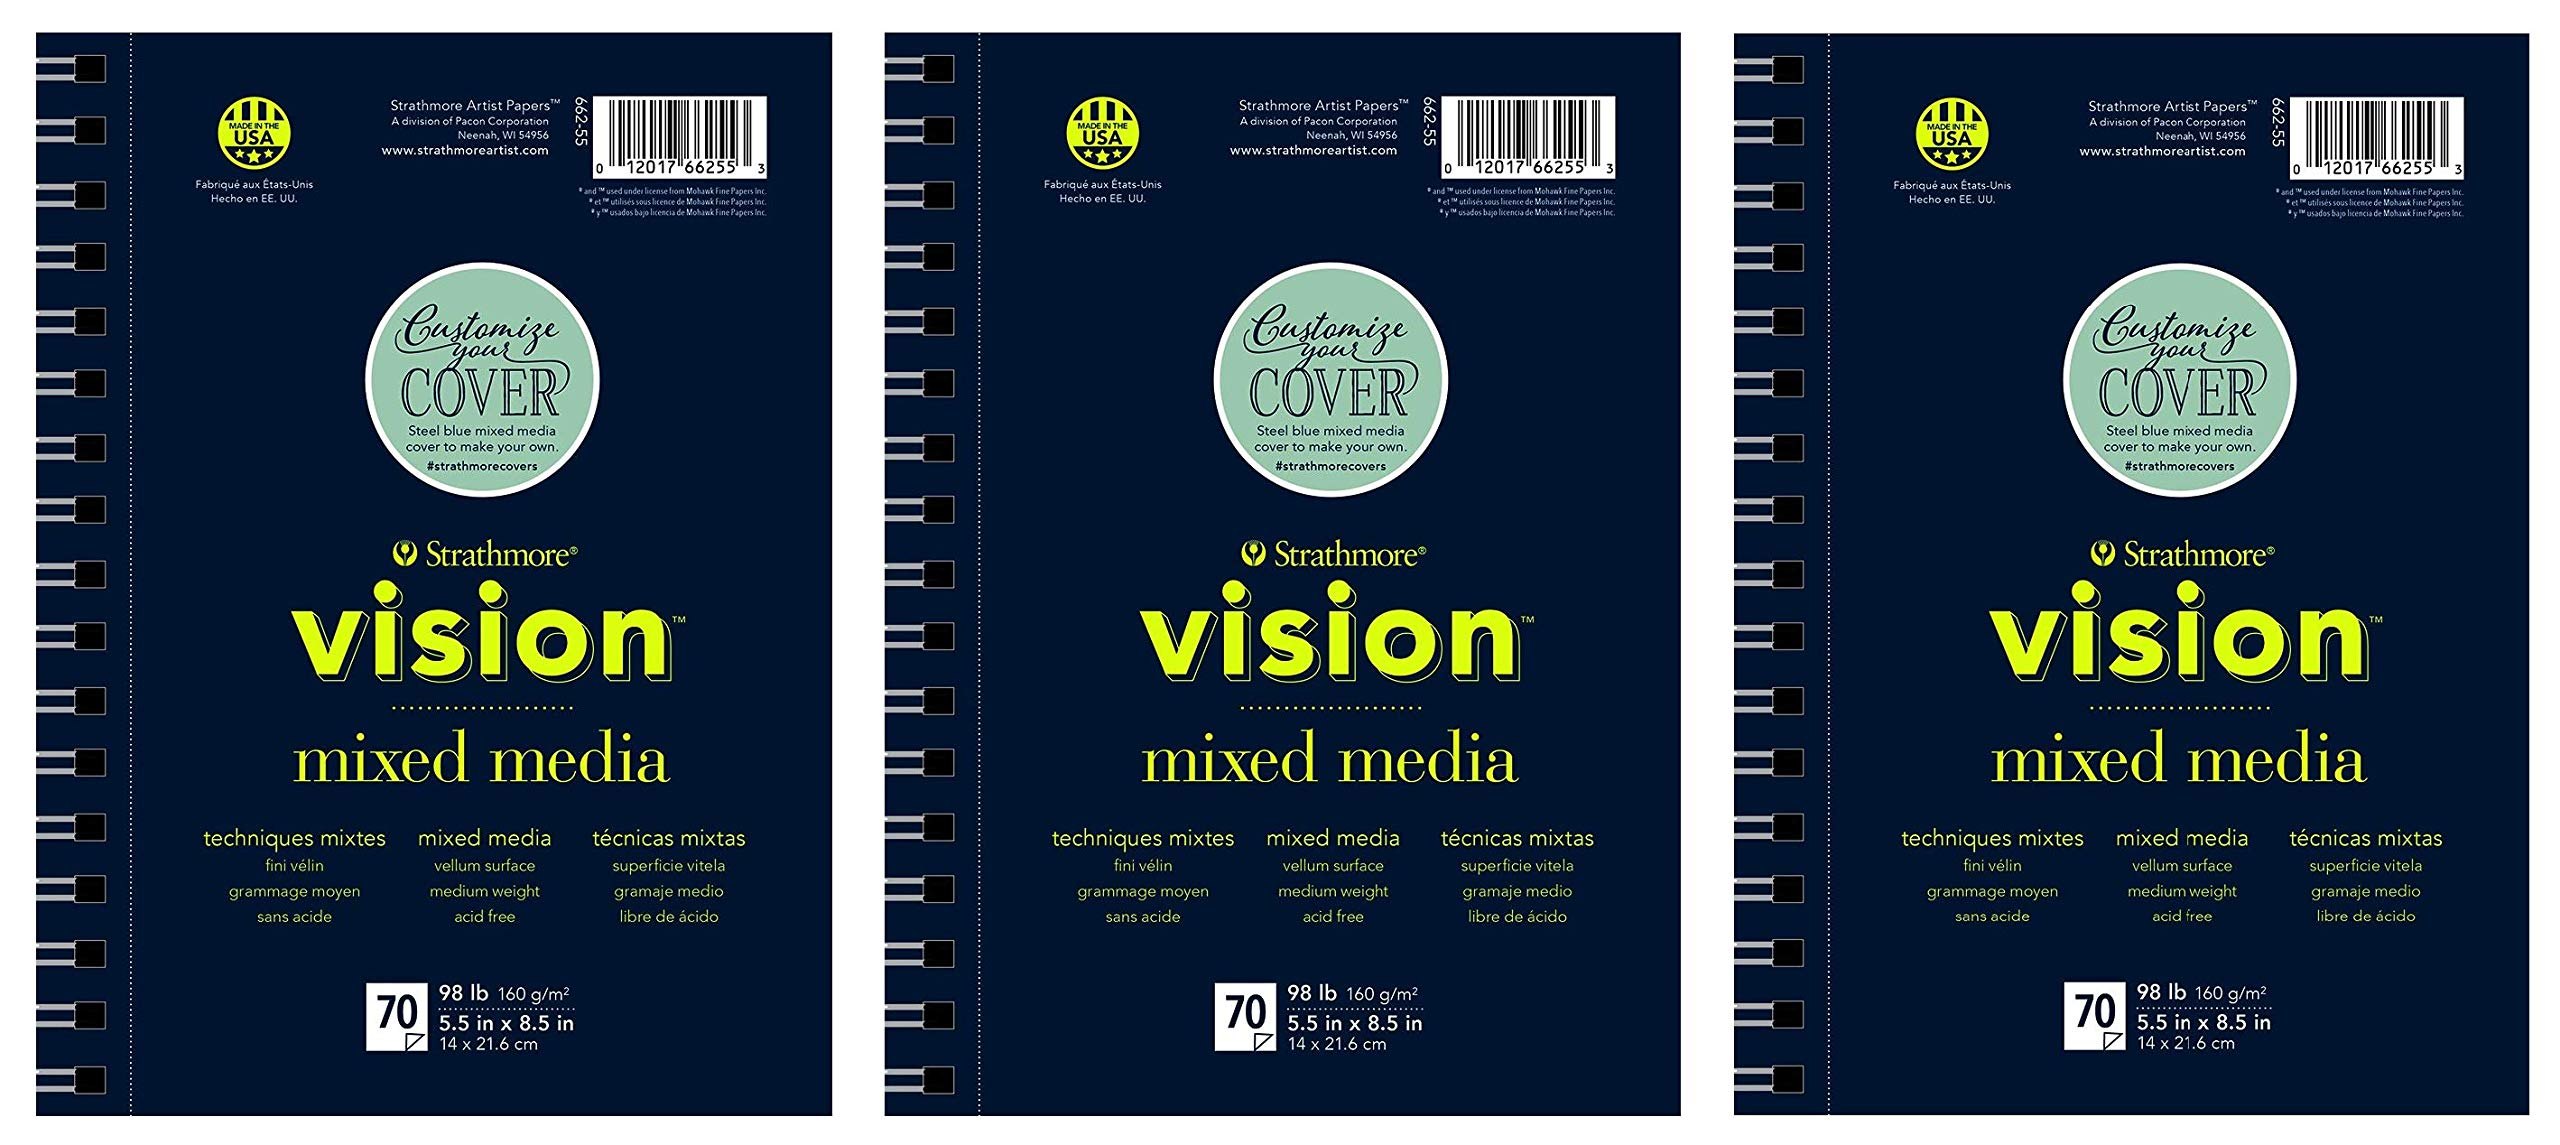 Strathmore 662-57 Vision Mixed Media Pad, 7''x10'', White, 70 Sheets (Тhrее Pаck) by Strathmore